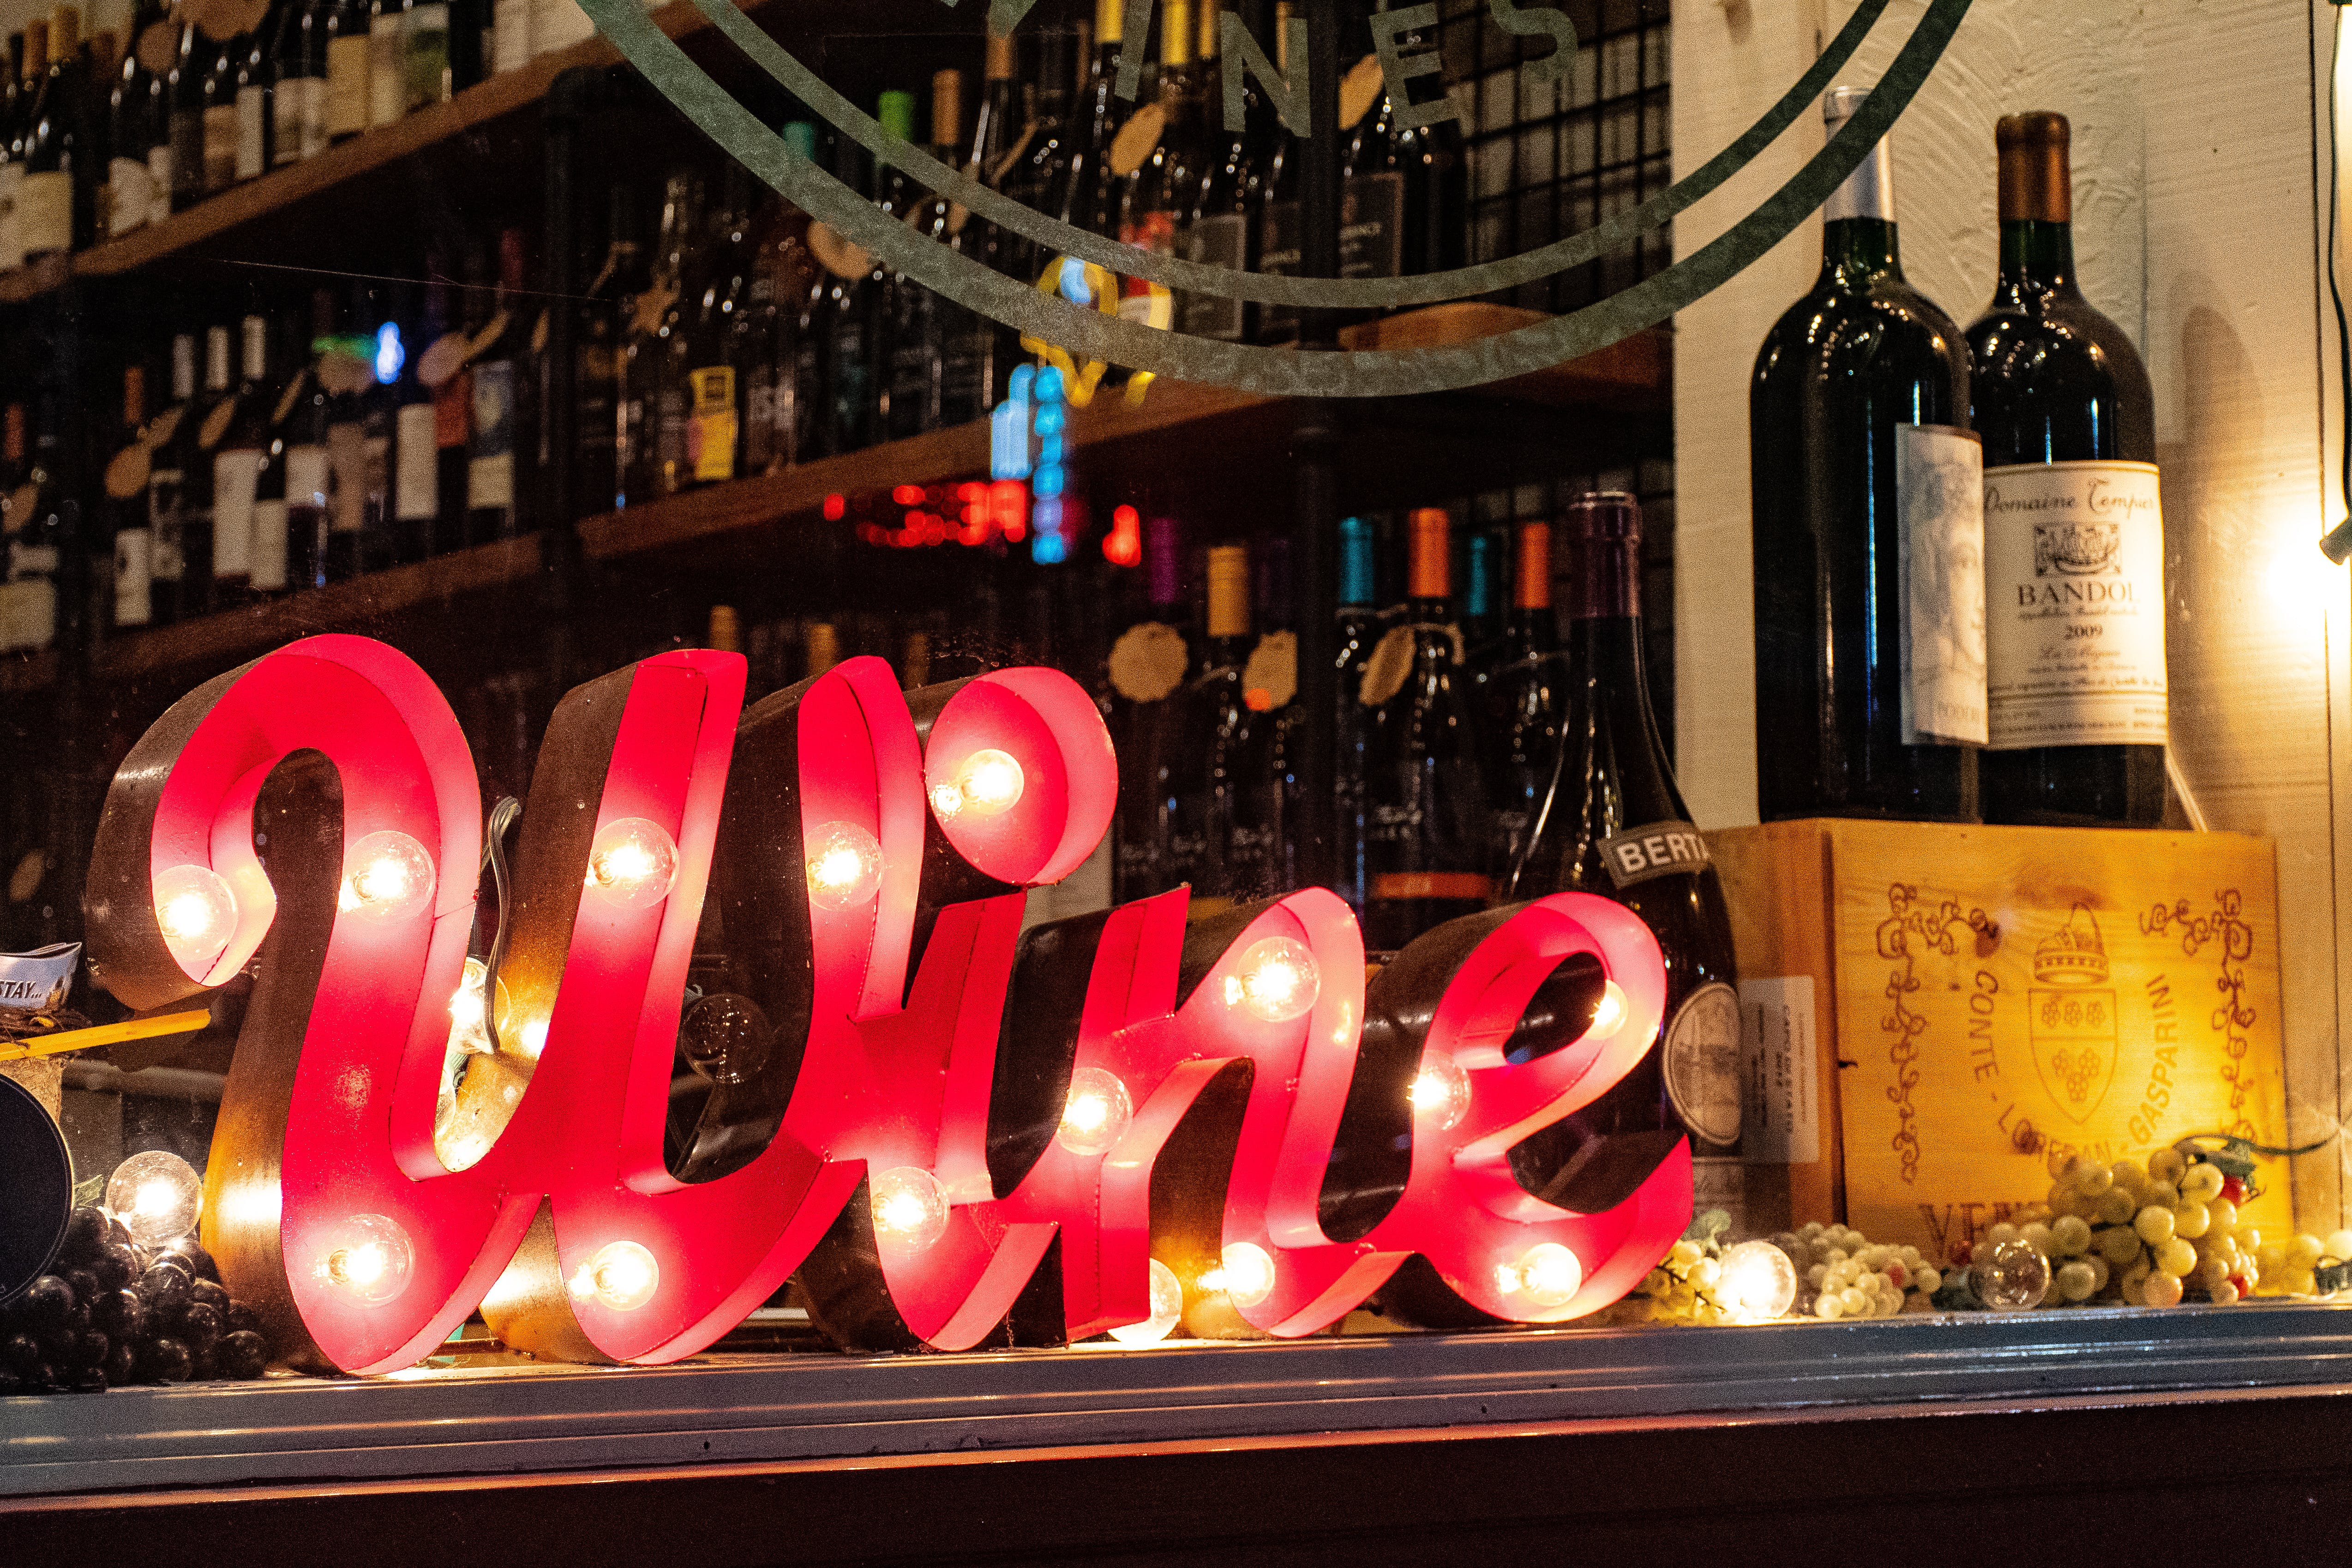 Red Wine Marquee Signage on Table